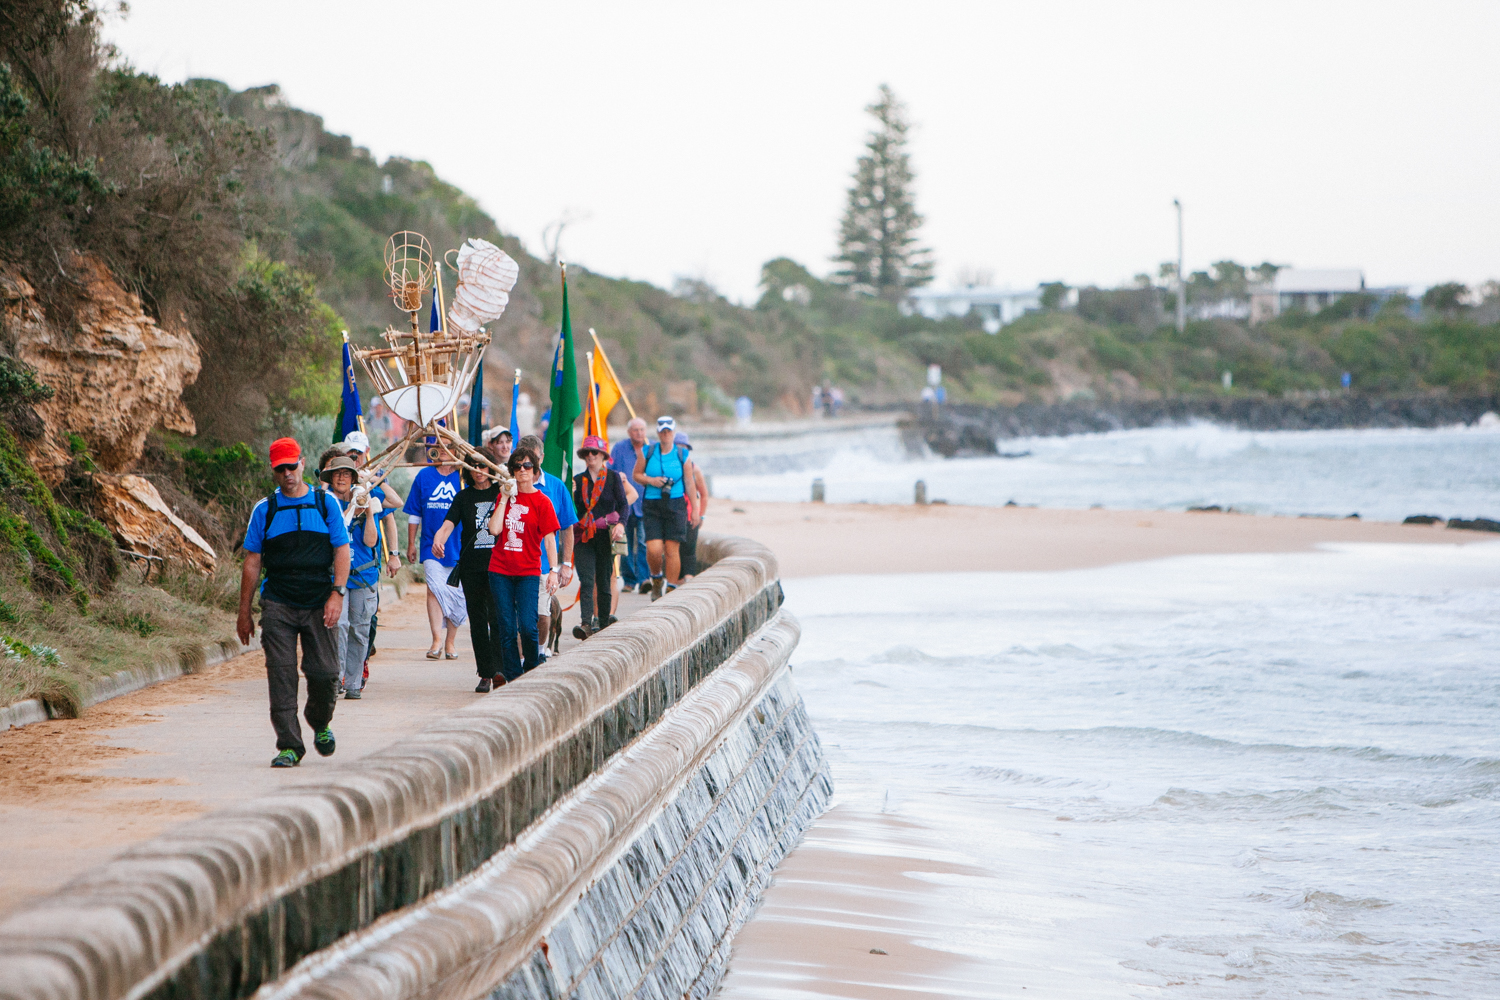 The procession reaches the coast side.   Image by Dean Walters Photography.